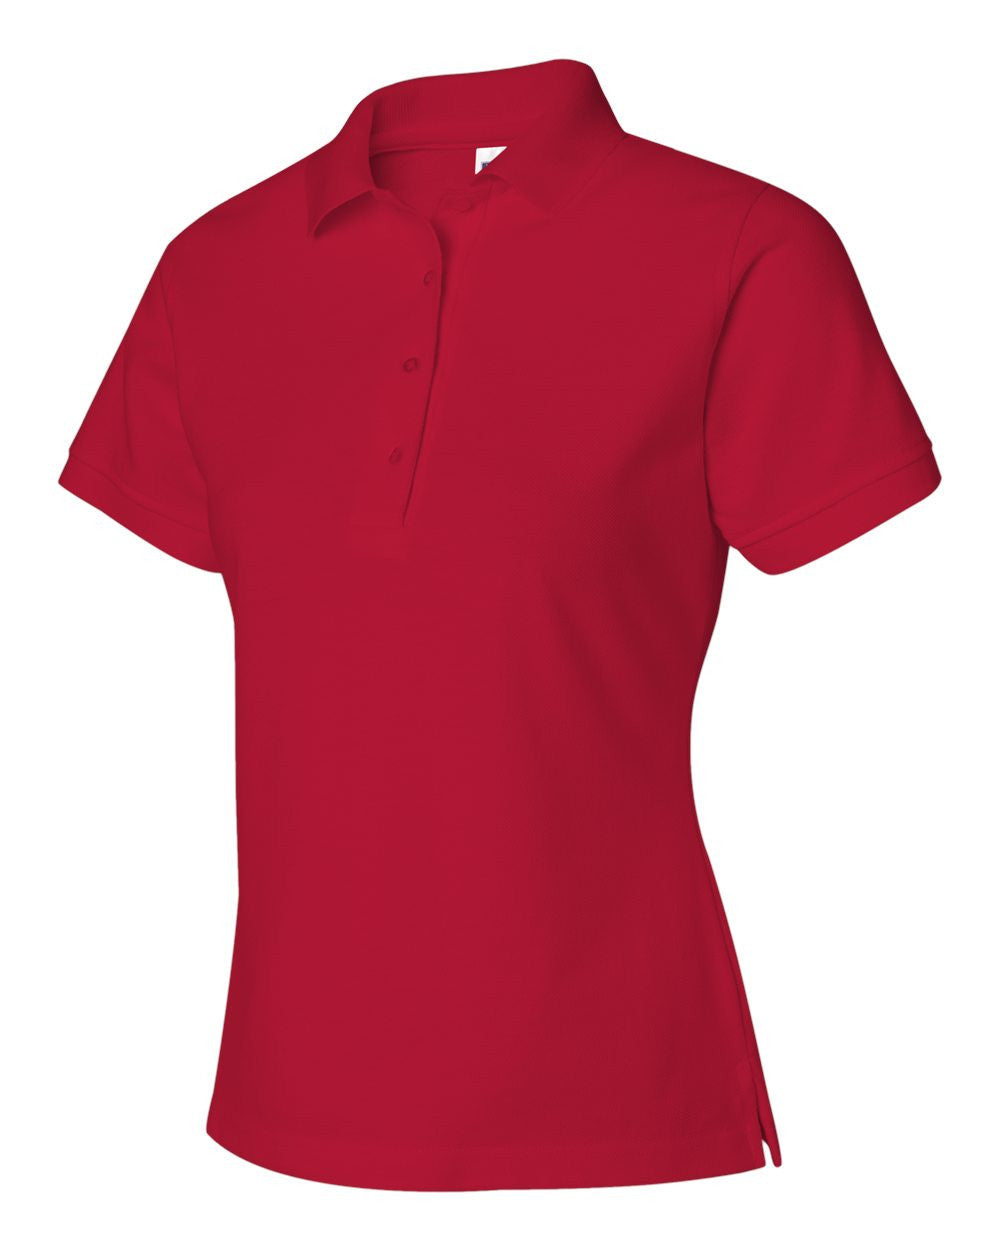 3 pack : Women' 100% Cotton Pique Polos by Jerseez - Discountedrack.com